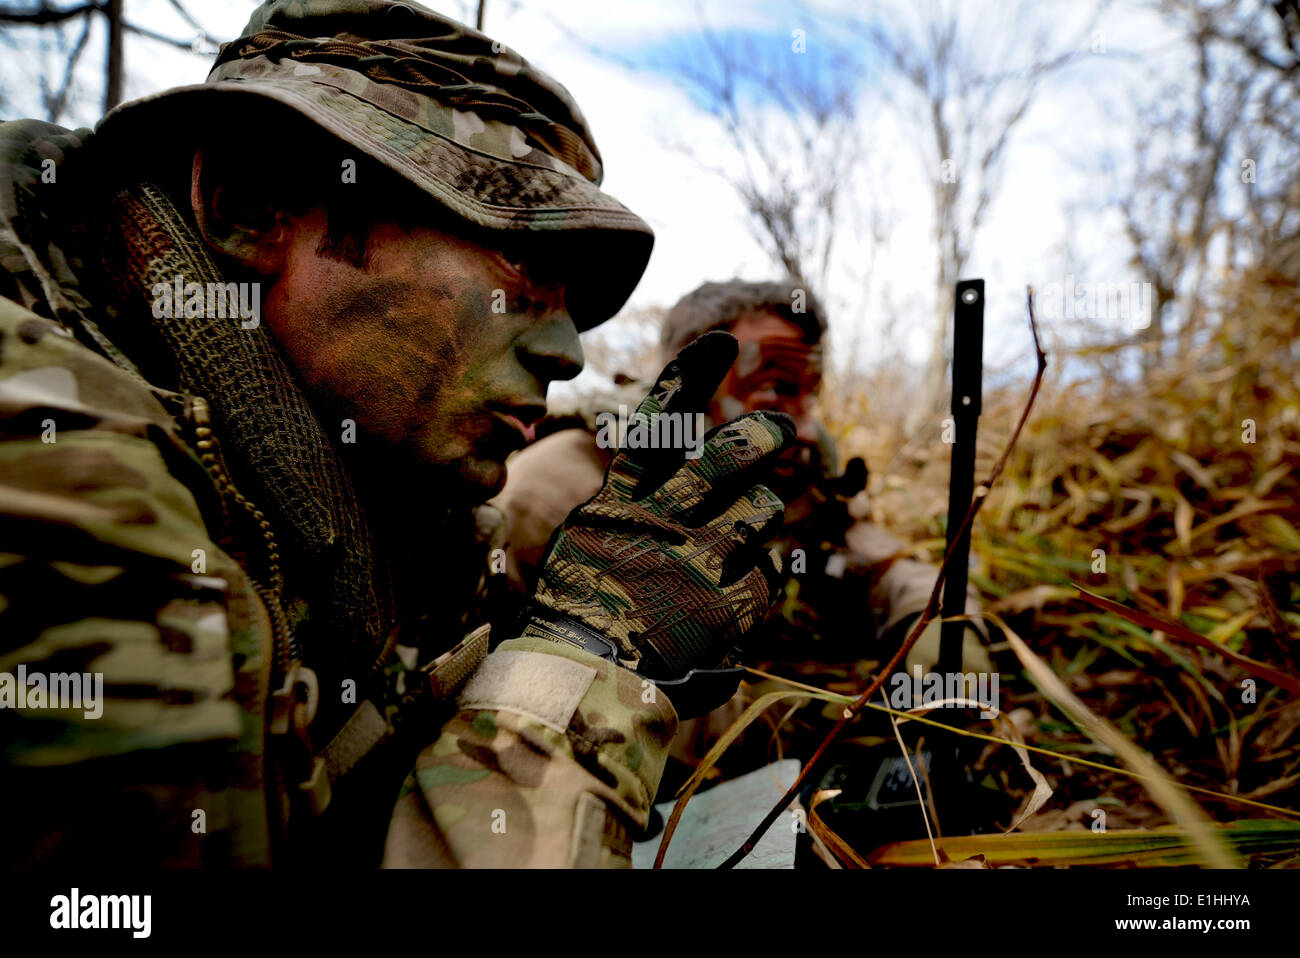 U.S. Air Force Tech. Sgt. Bobby Colliton and Staff Sgt. Dane Hatley conduct combat survival training near Osan Air Stock Photo